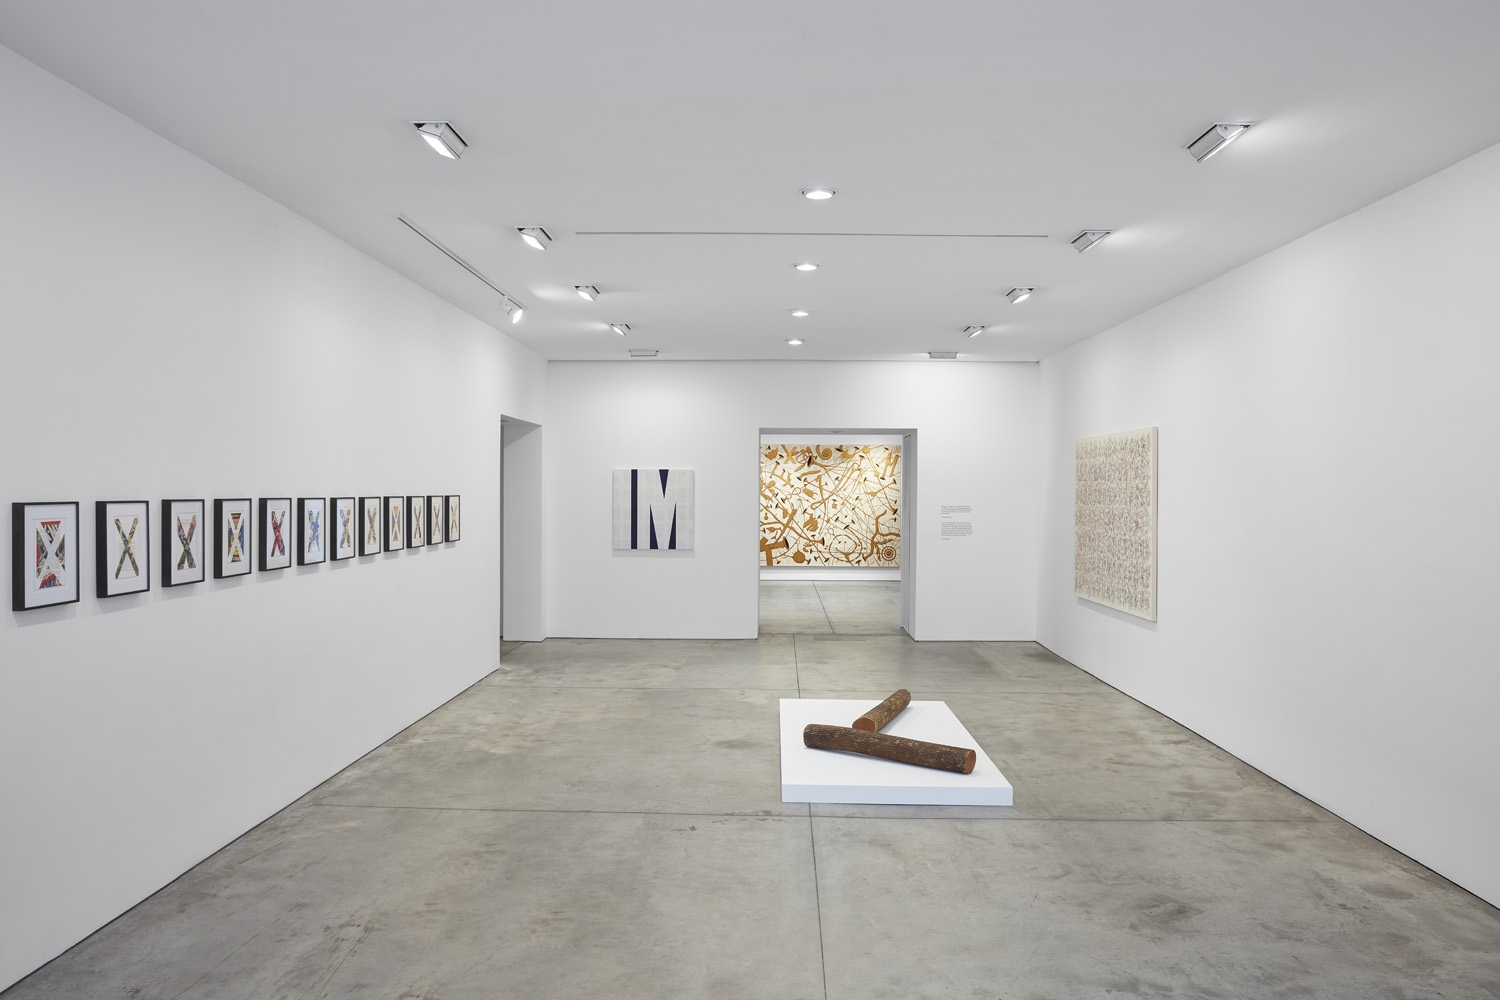 Tim Rollins and K.O.S.,Workshop, Installation view at Lehmann Maupin, New York